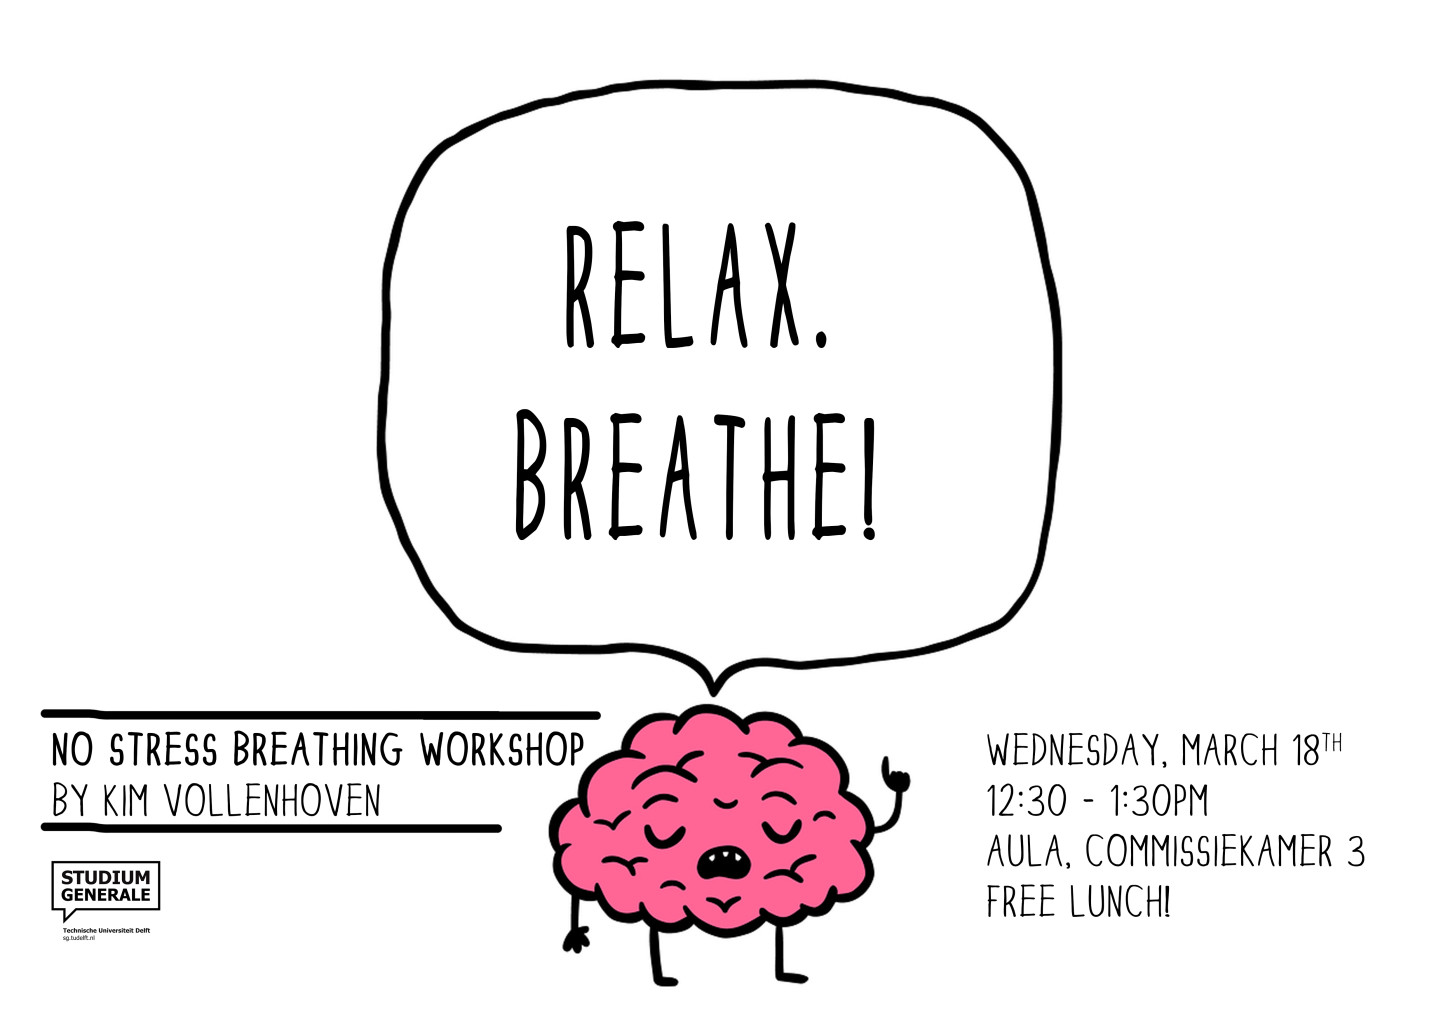 Breathing workshop